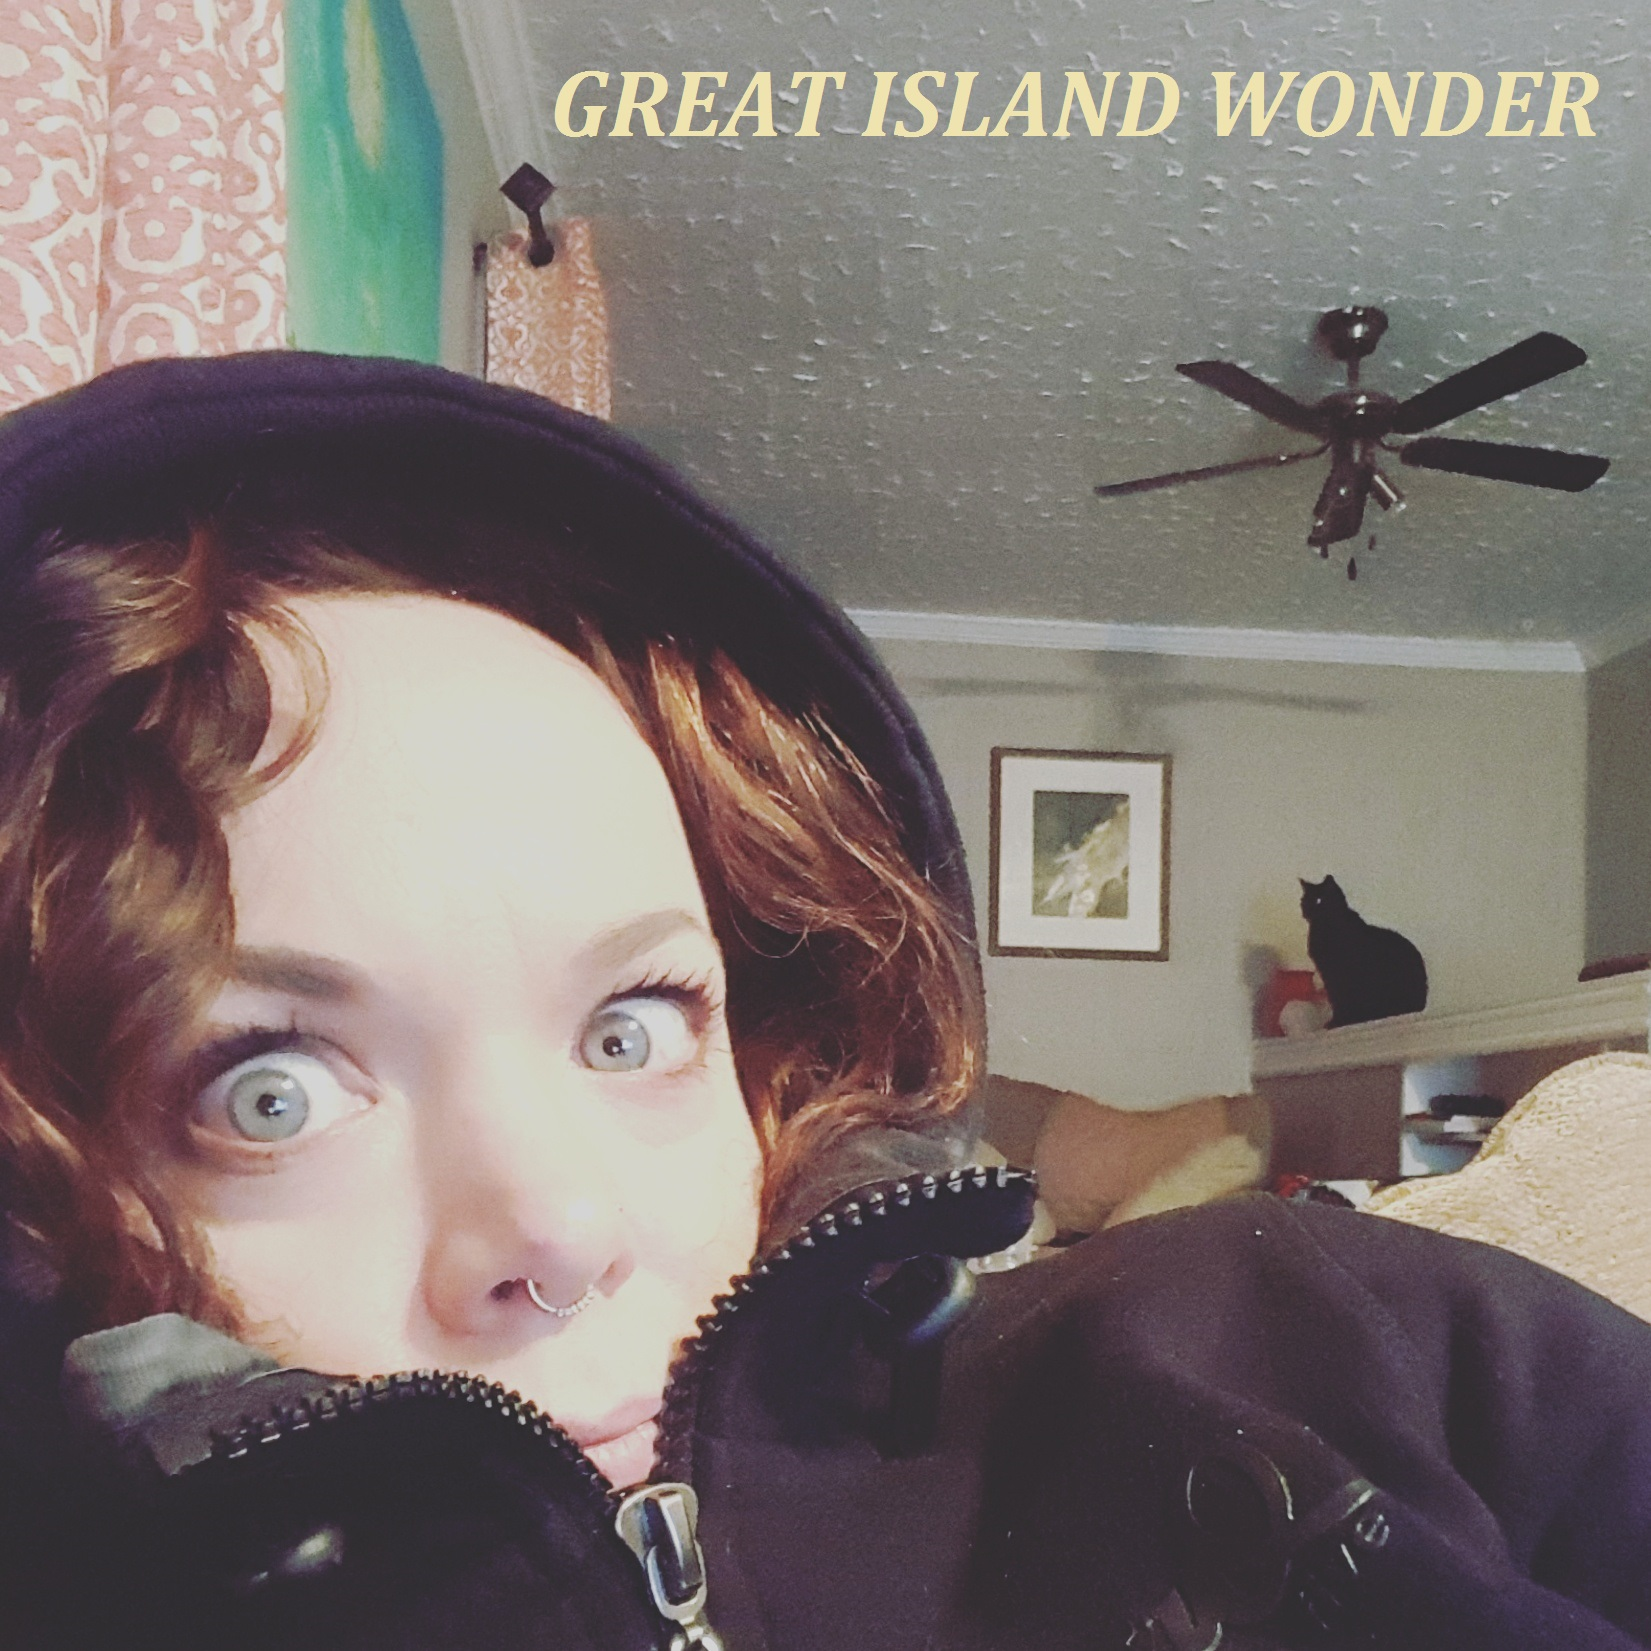 Great Island Wonder - Allison Crowe - album front cover